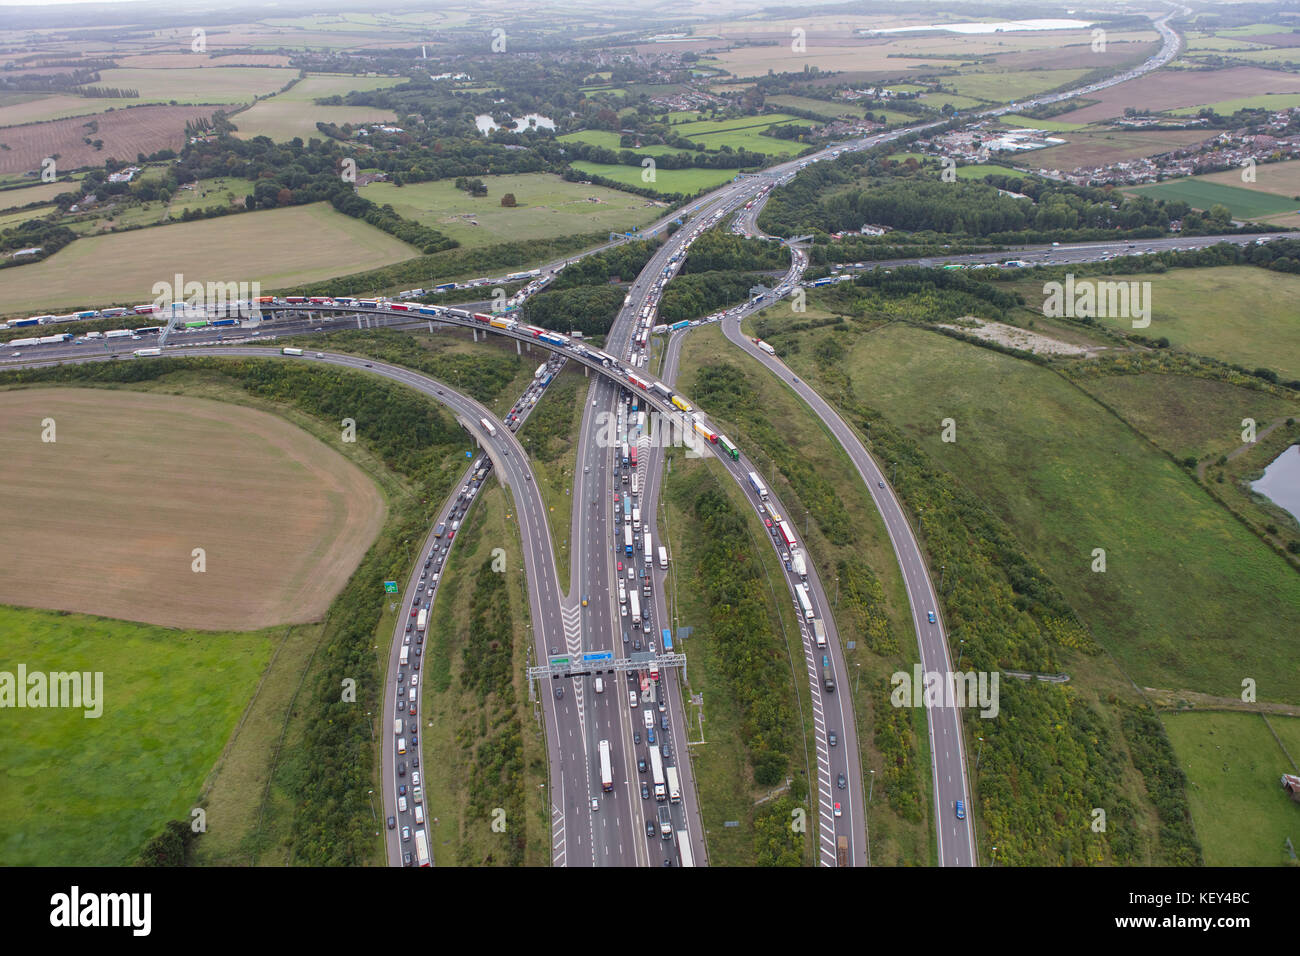 An aerial view showing traffic congestion at Junction 2 of the M25 London Orbital motorway - Stock Image